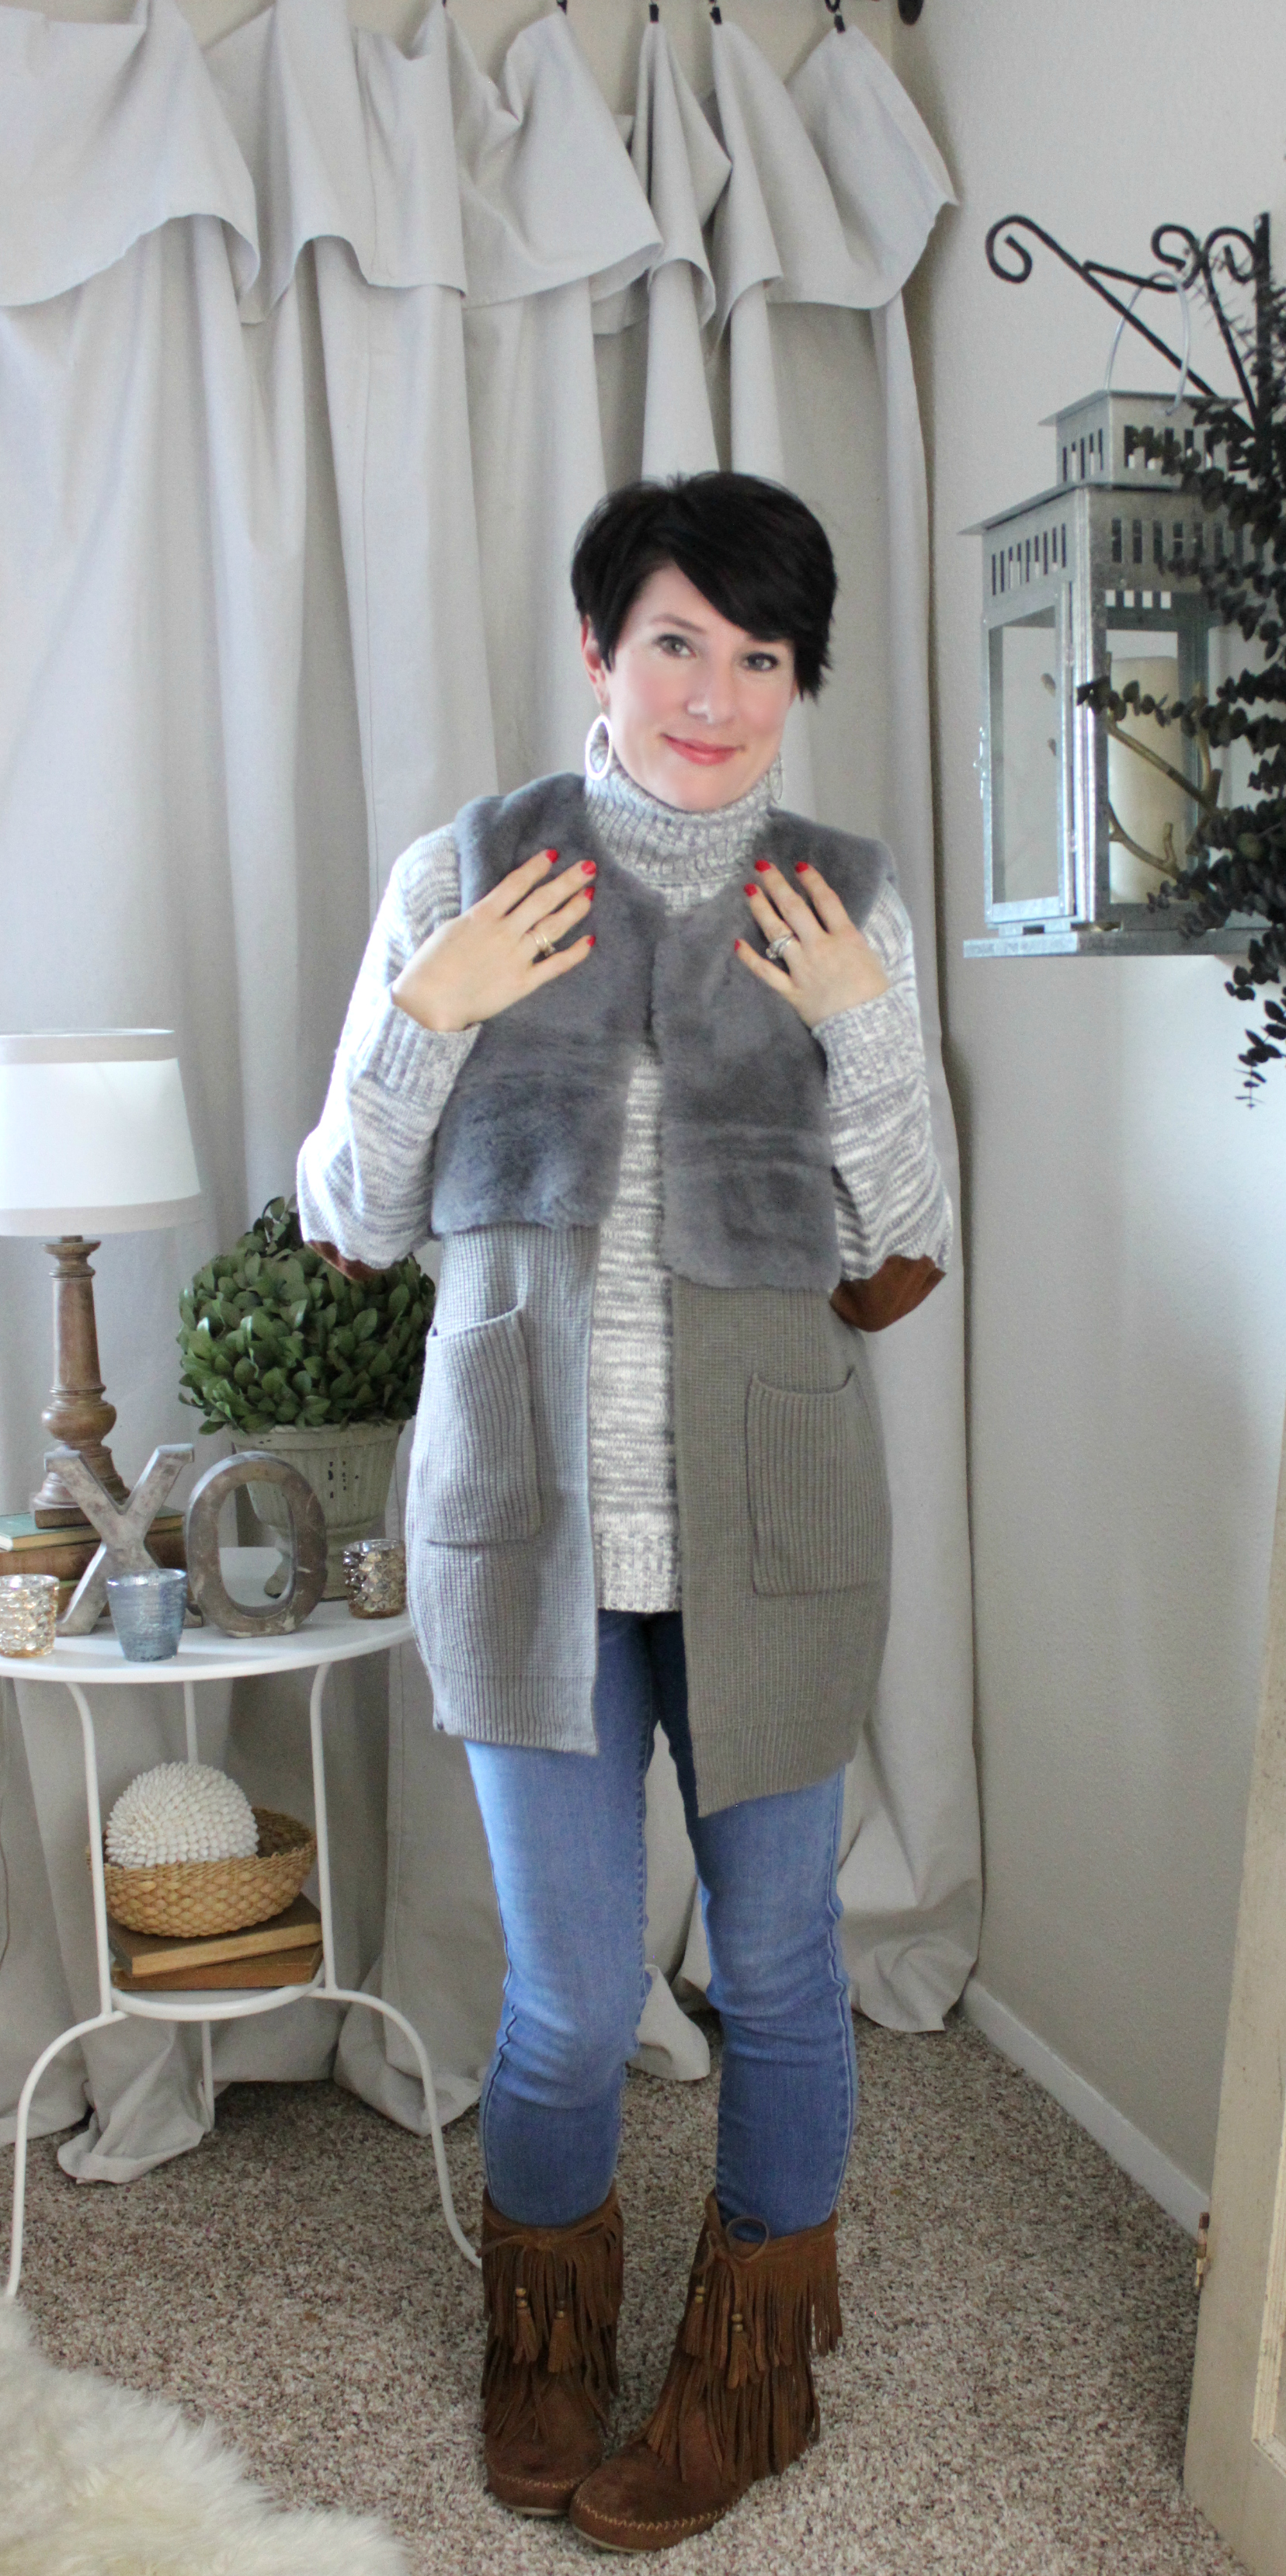 Sunday Style: Remember When Sweater | An Inspired Nest